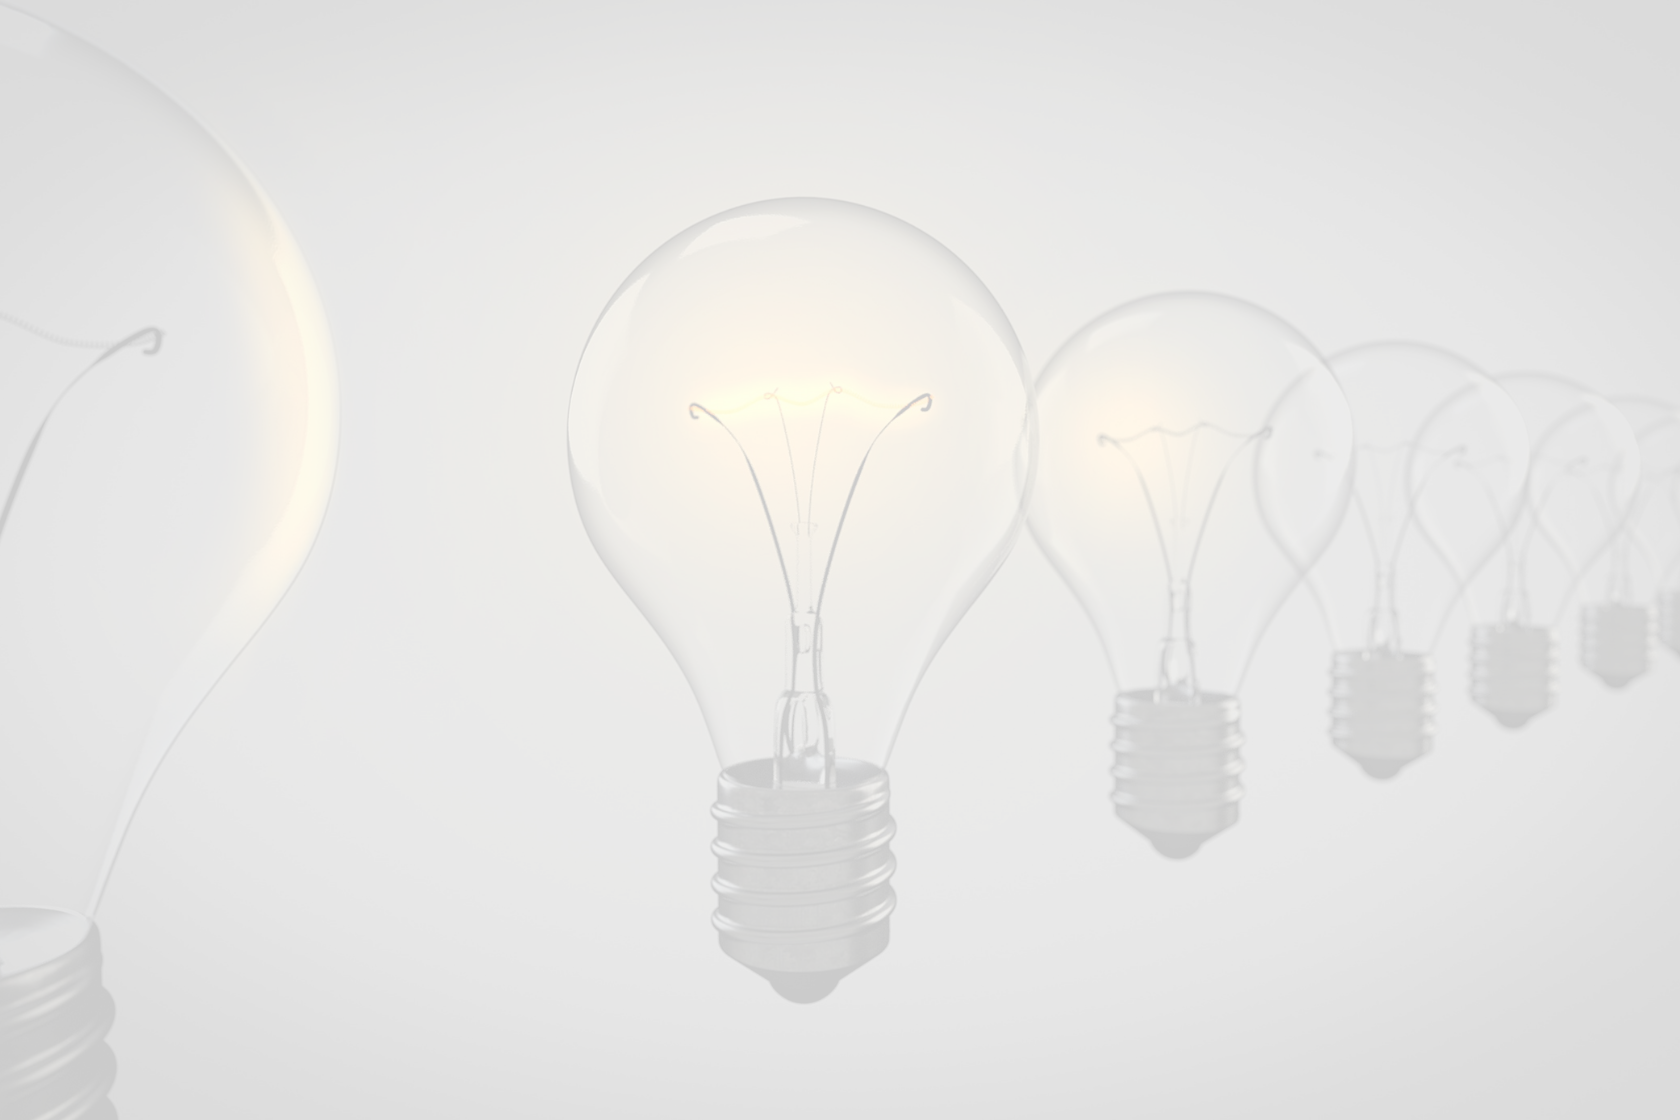 generic background image of lightbulbs